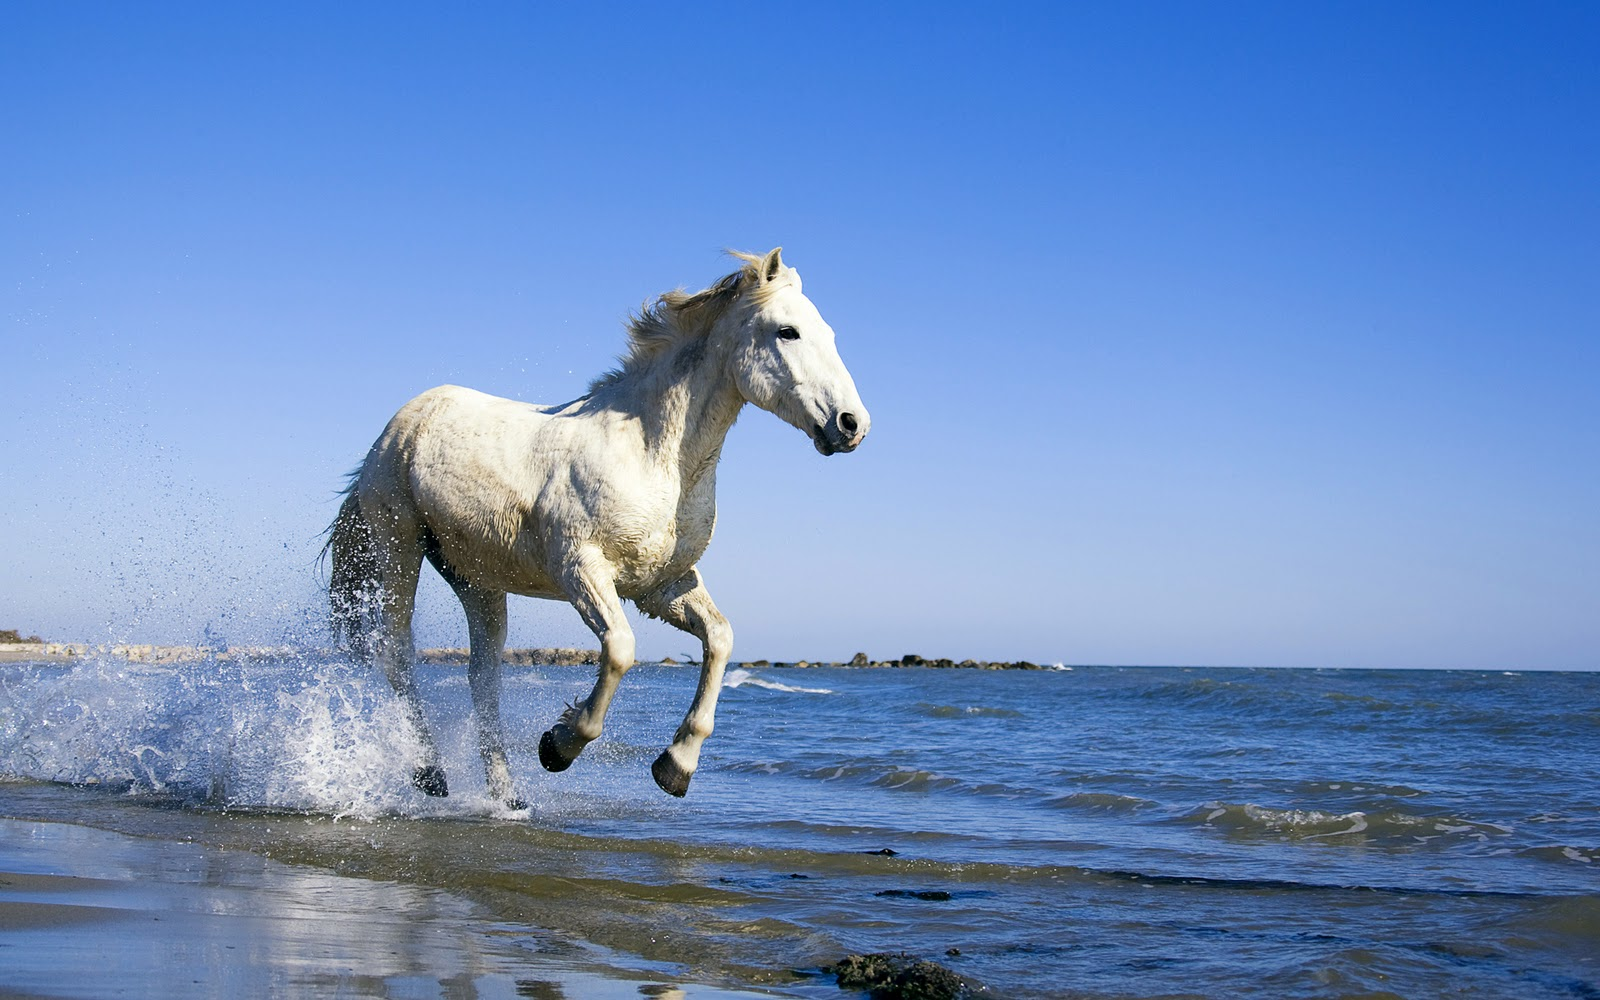 Must see   Wallpaper Horse Stunning - Horses+Wallpapers+1920x1200  Collection_465140.jpg